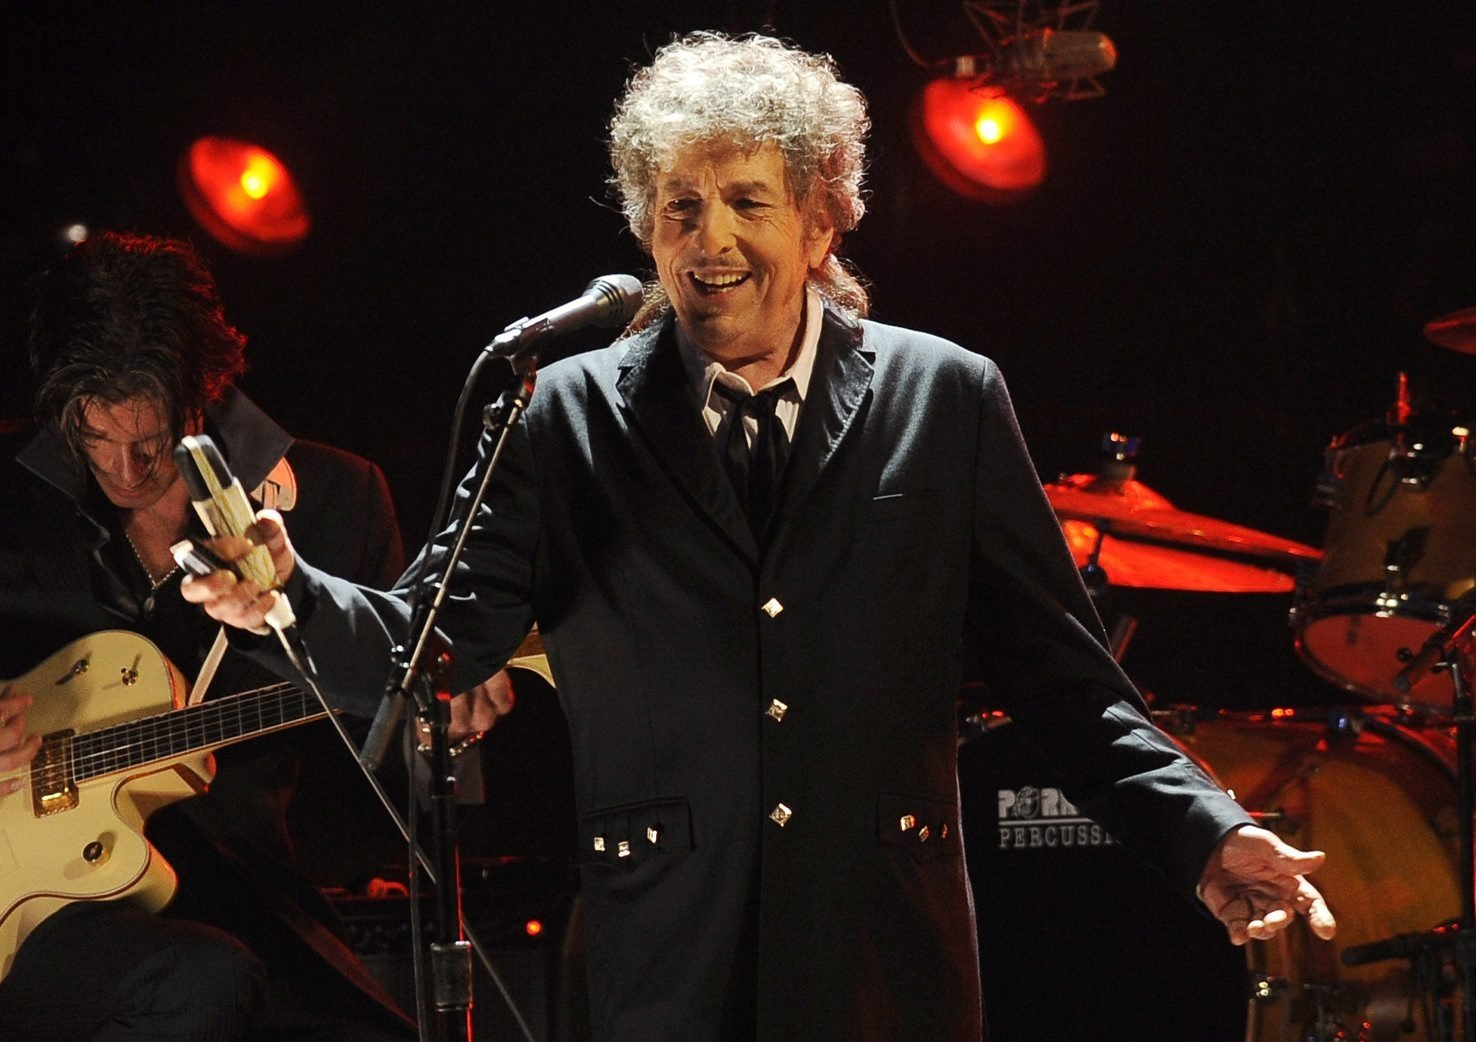 Bob Dylan performs during a concert in Los Angeles, U.S., Jan. 12, 2012. (AP Photo)